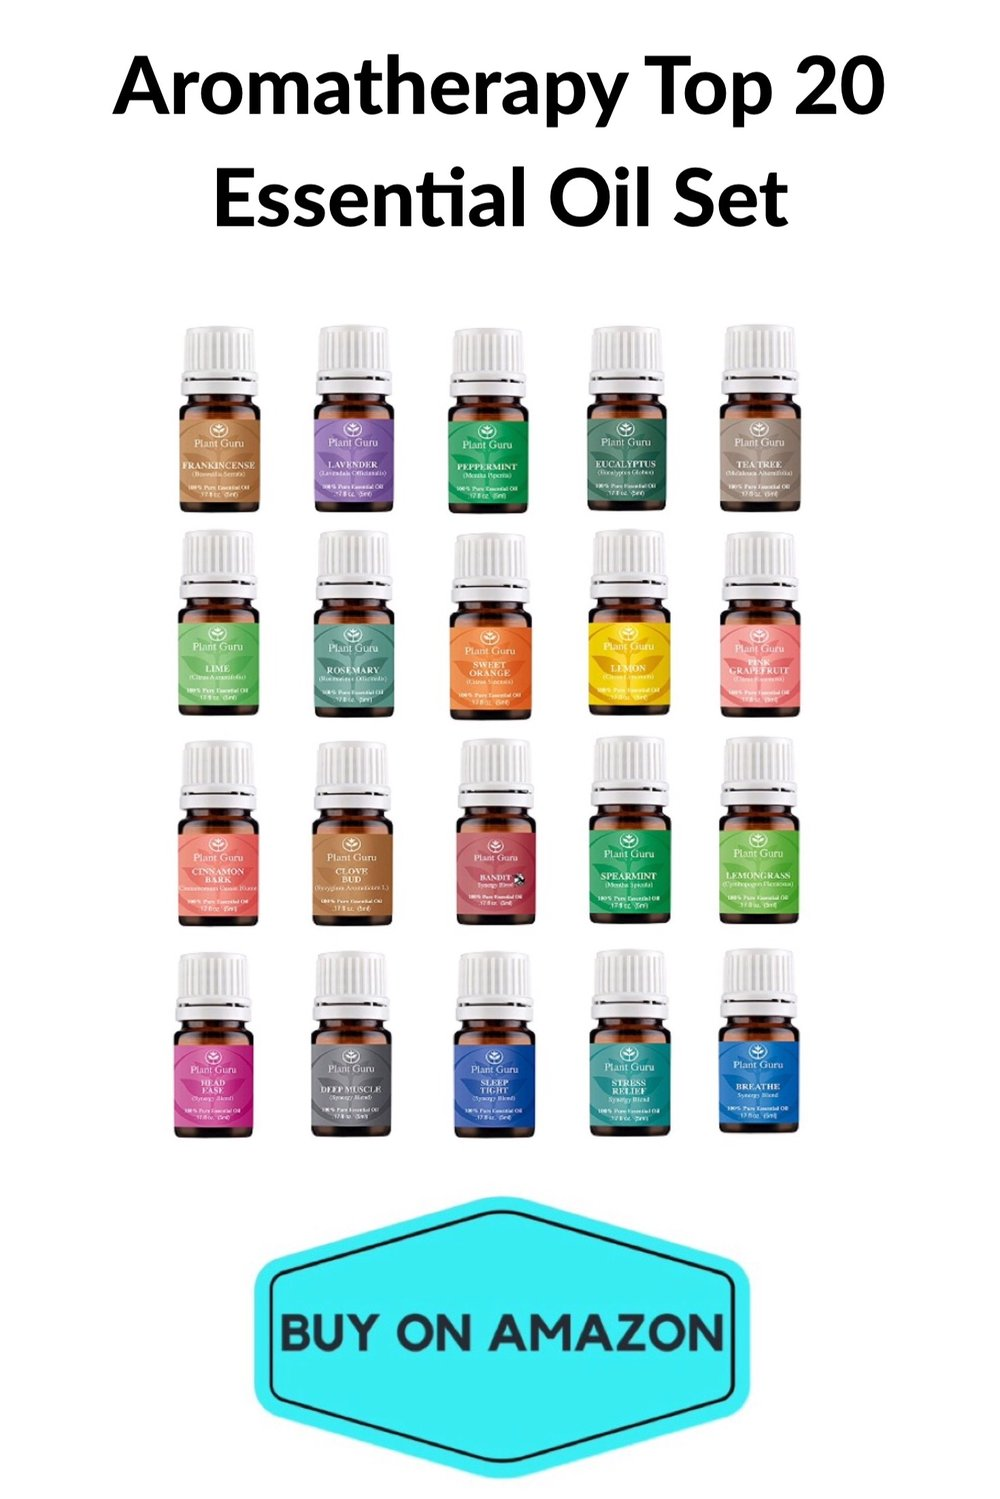 Aromatherapy Top 20 Essential Oil set